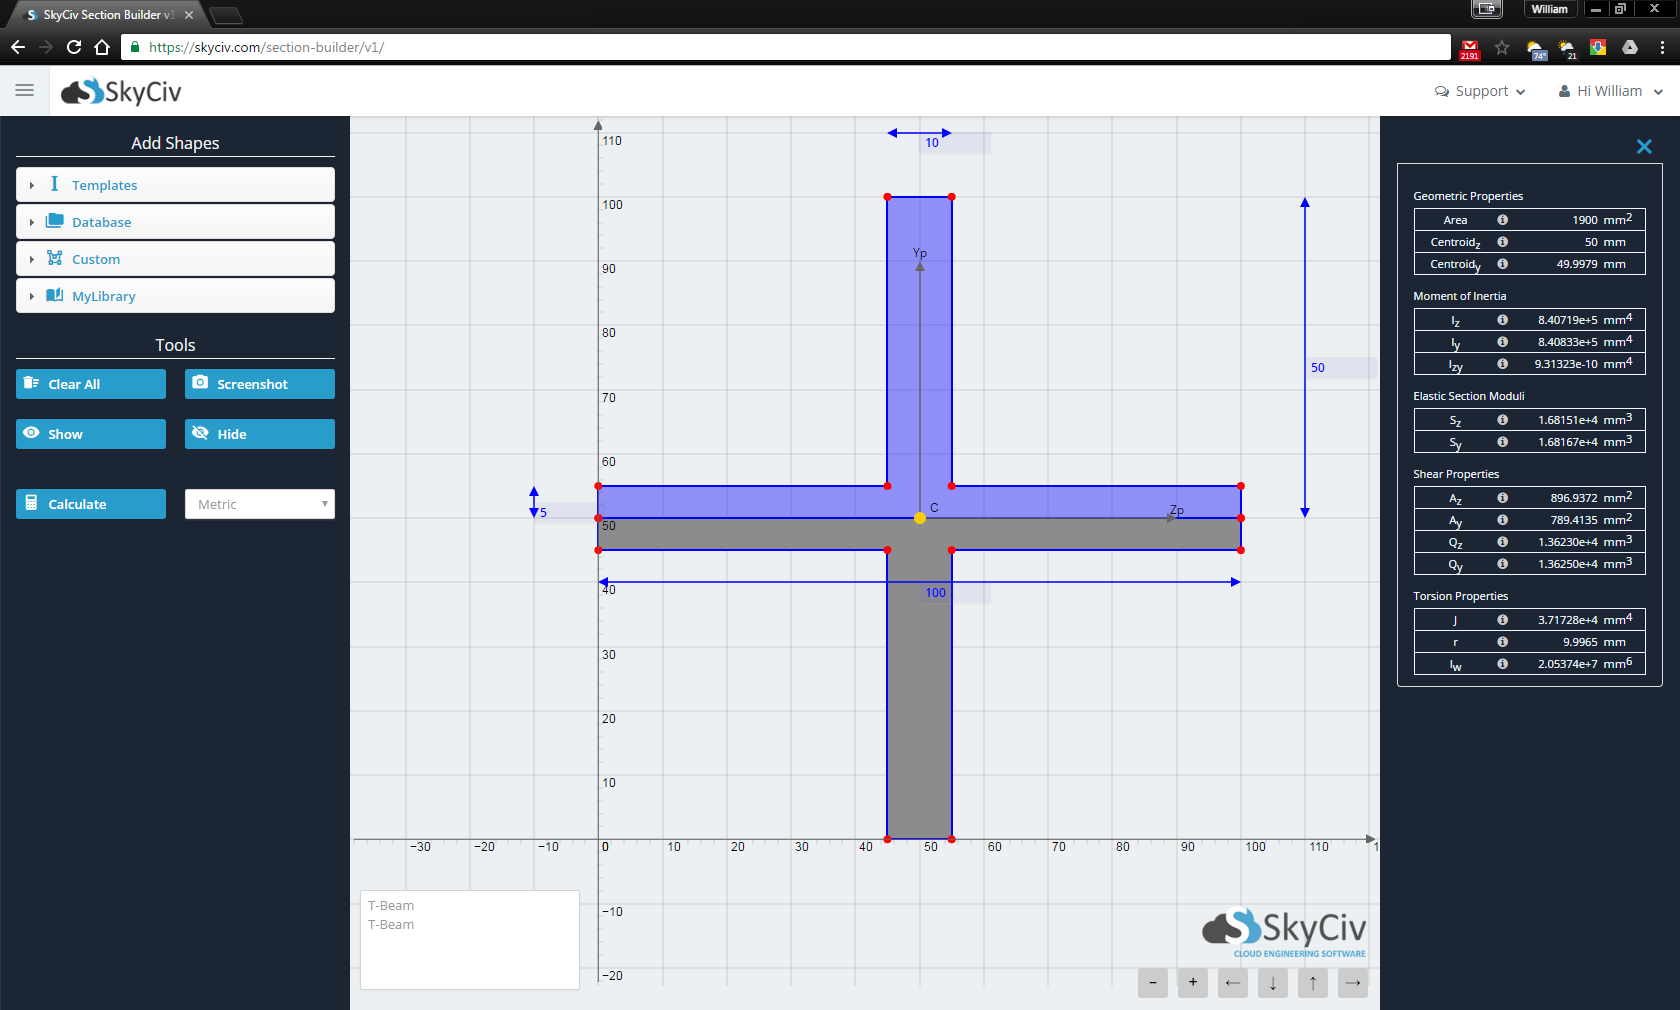 SkyCiv Crossed T Beam Software Section Builder Online